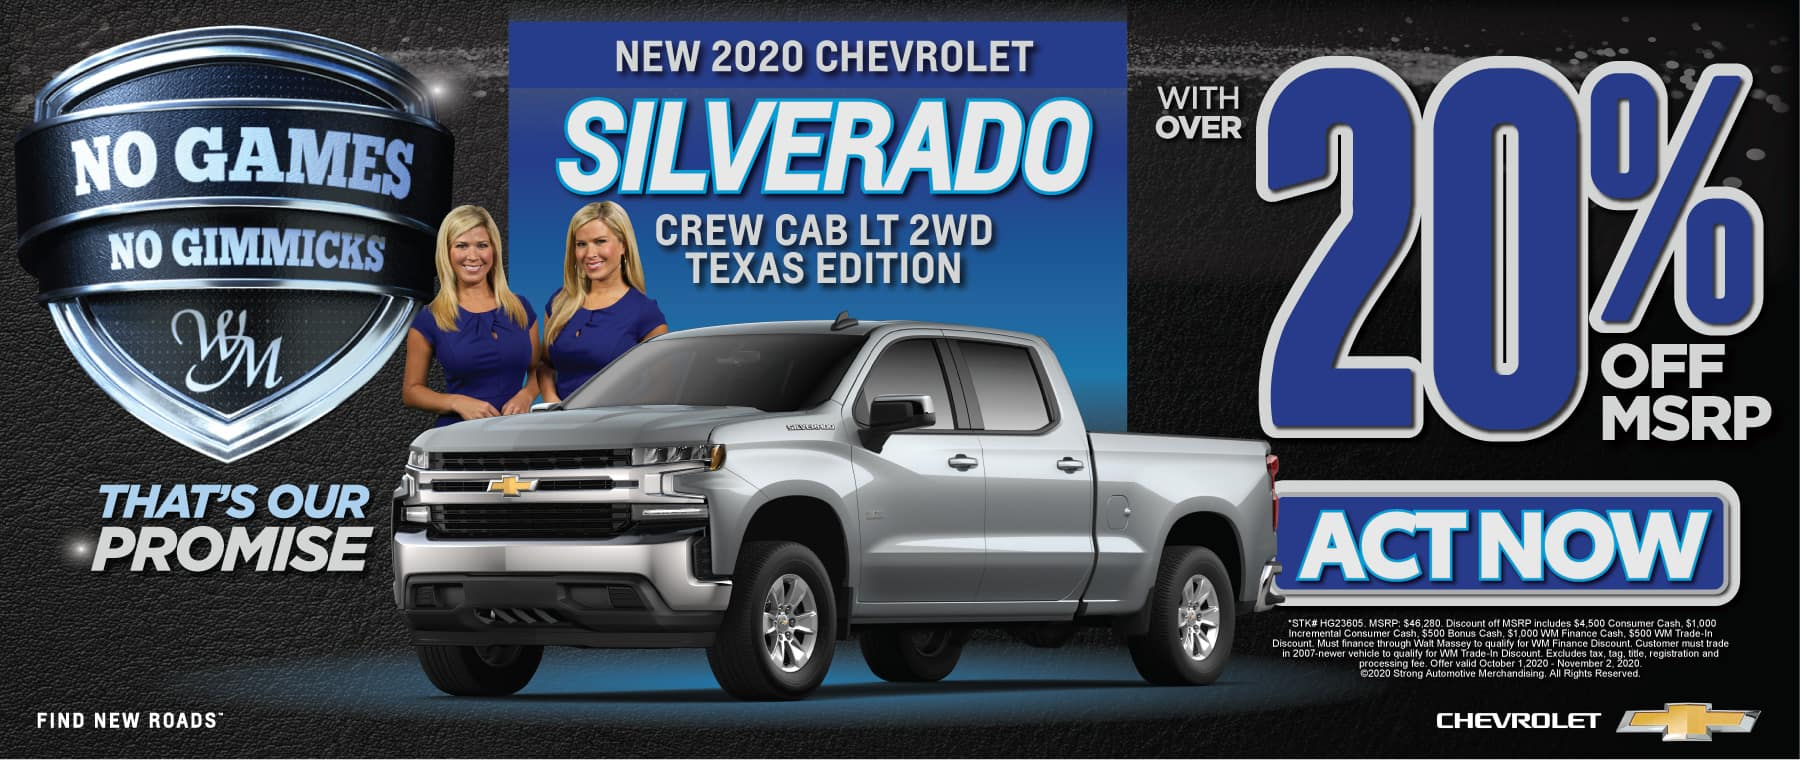 New 2020 Chevrolet Silverado | 25% off msrp | Act Now